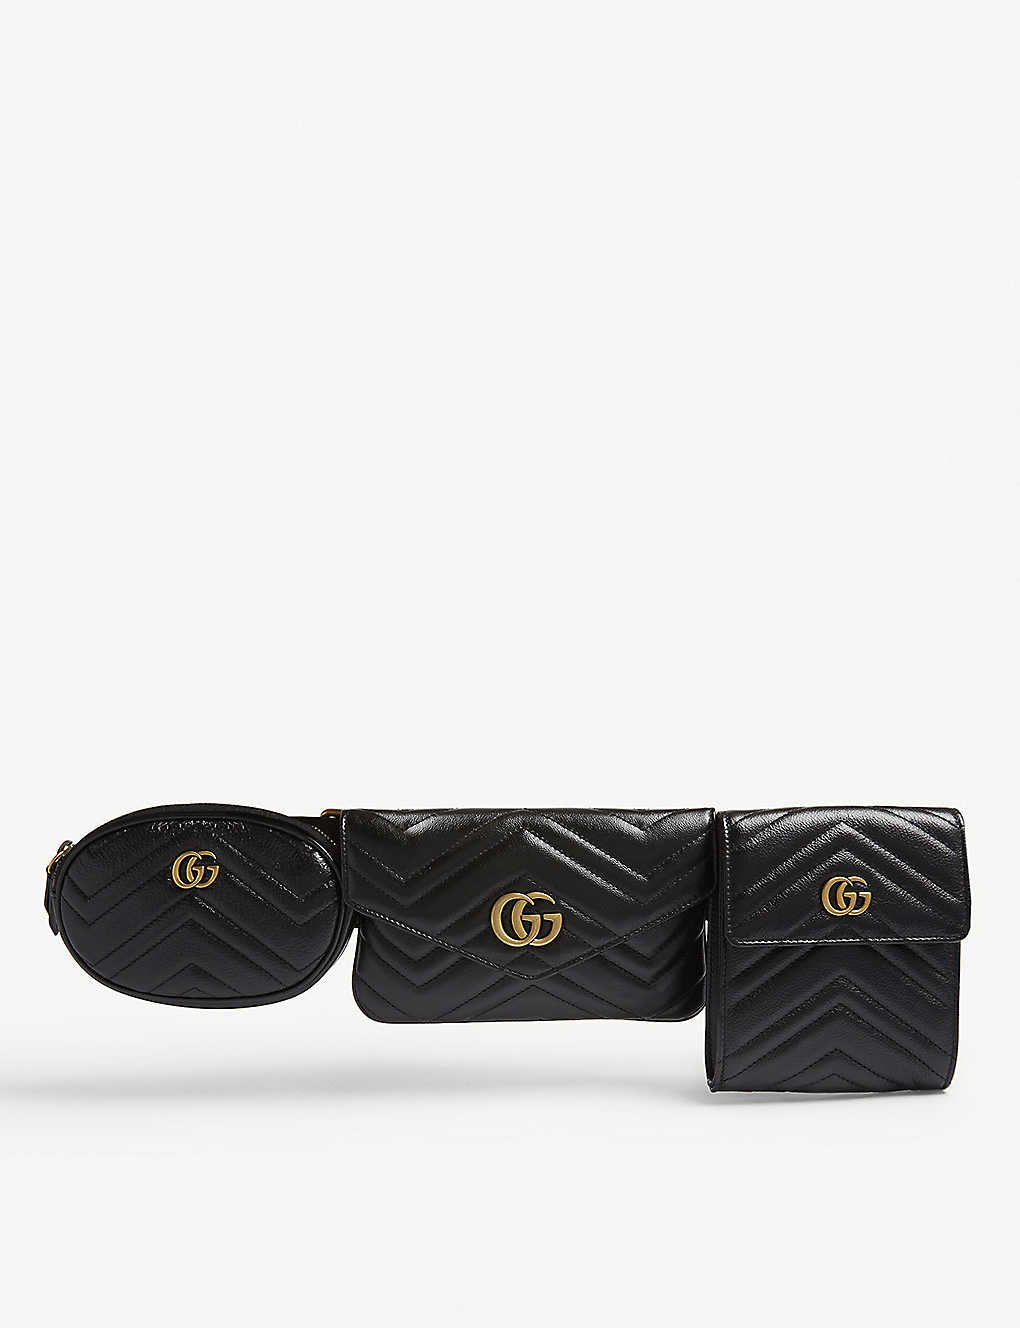 3c6157ba61e3 GUCCI - GG Marmont matelassé leather multi belt bag | Selfridges.com